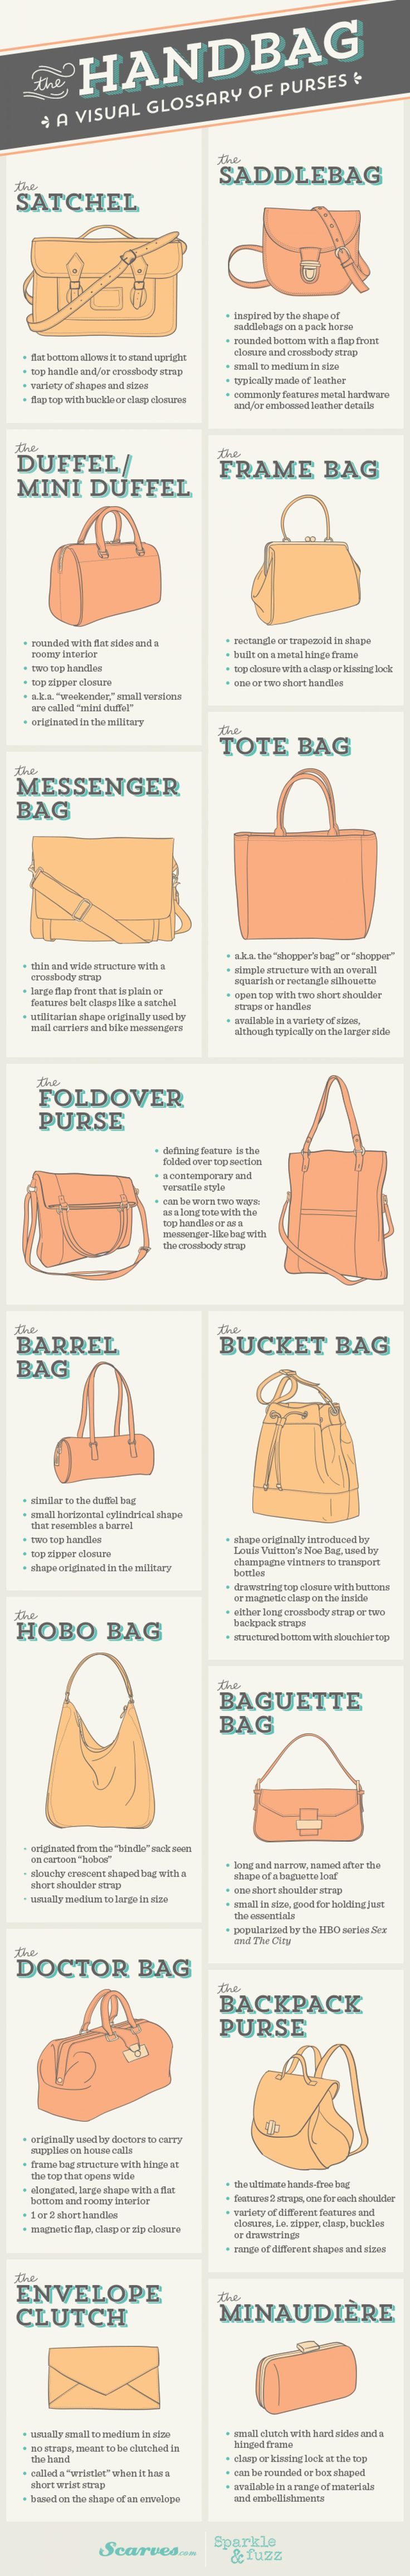 this guide will help make your next purse purchase an educated one #infographic #handbags